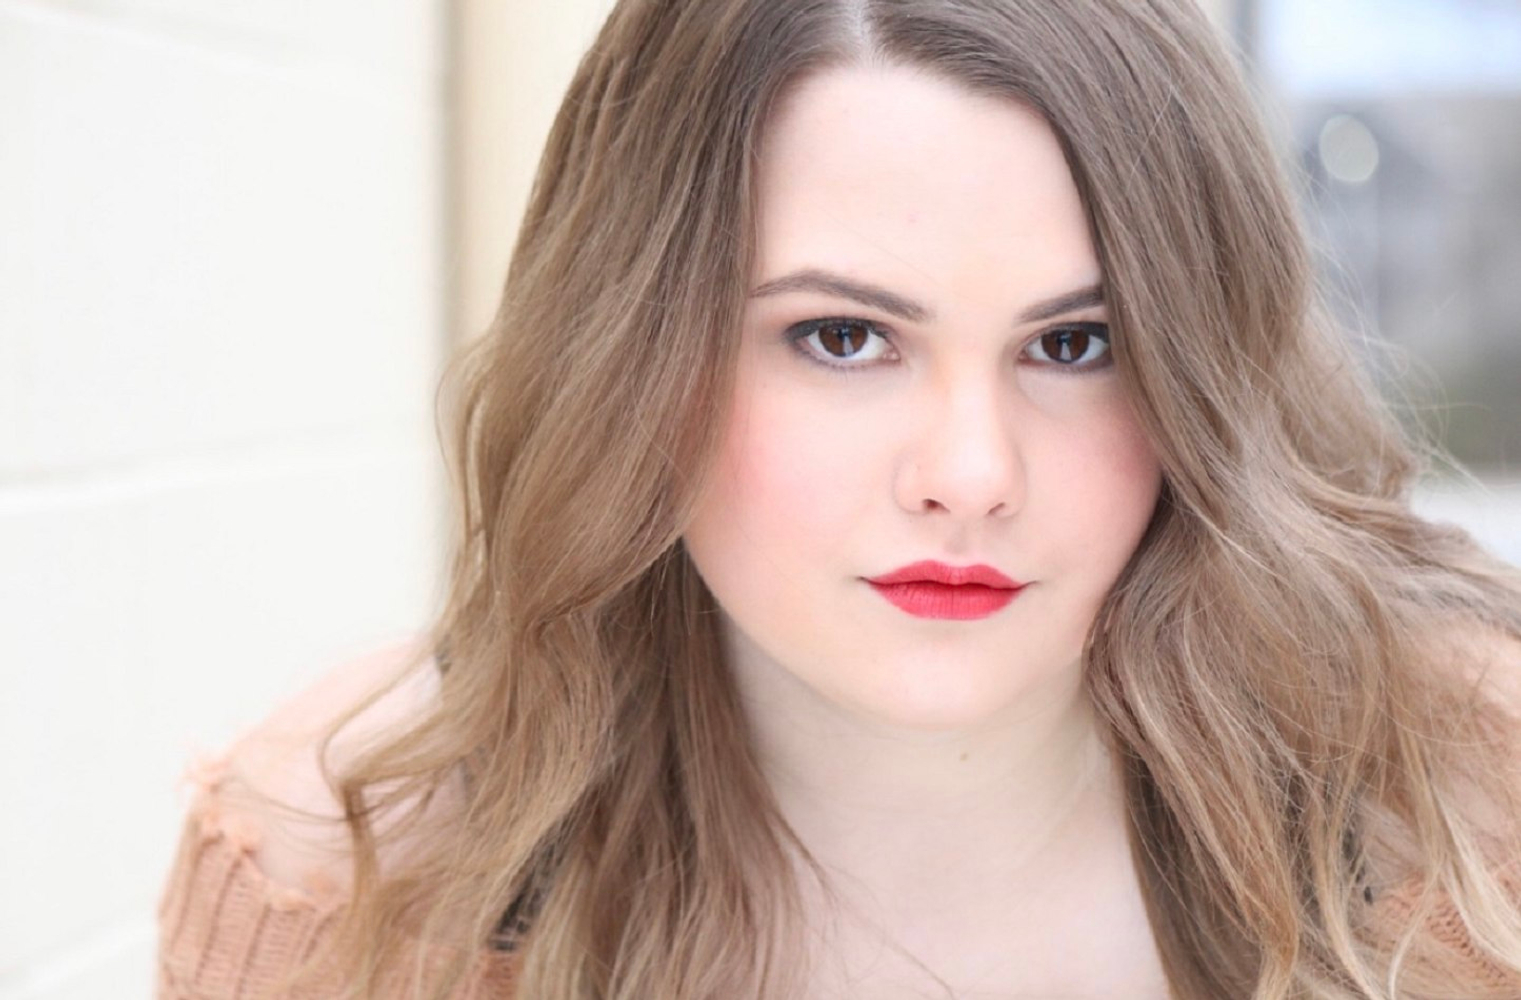 Camryn Sturgill represented by The Tabb Agency